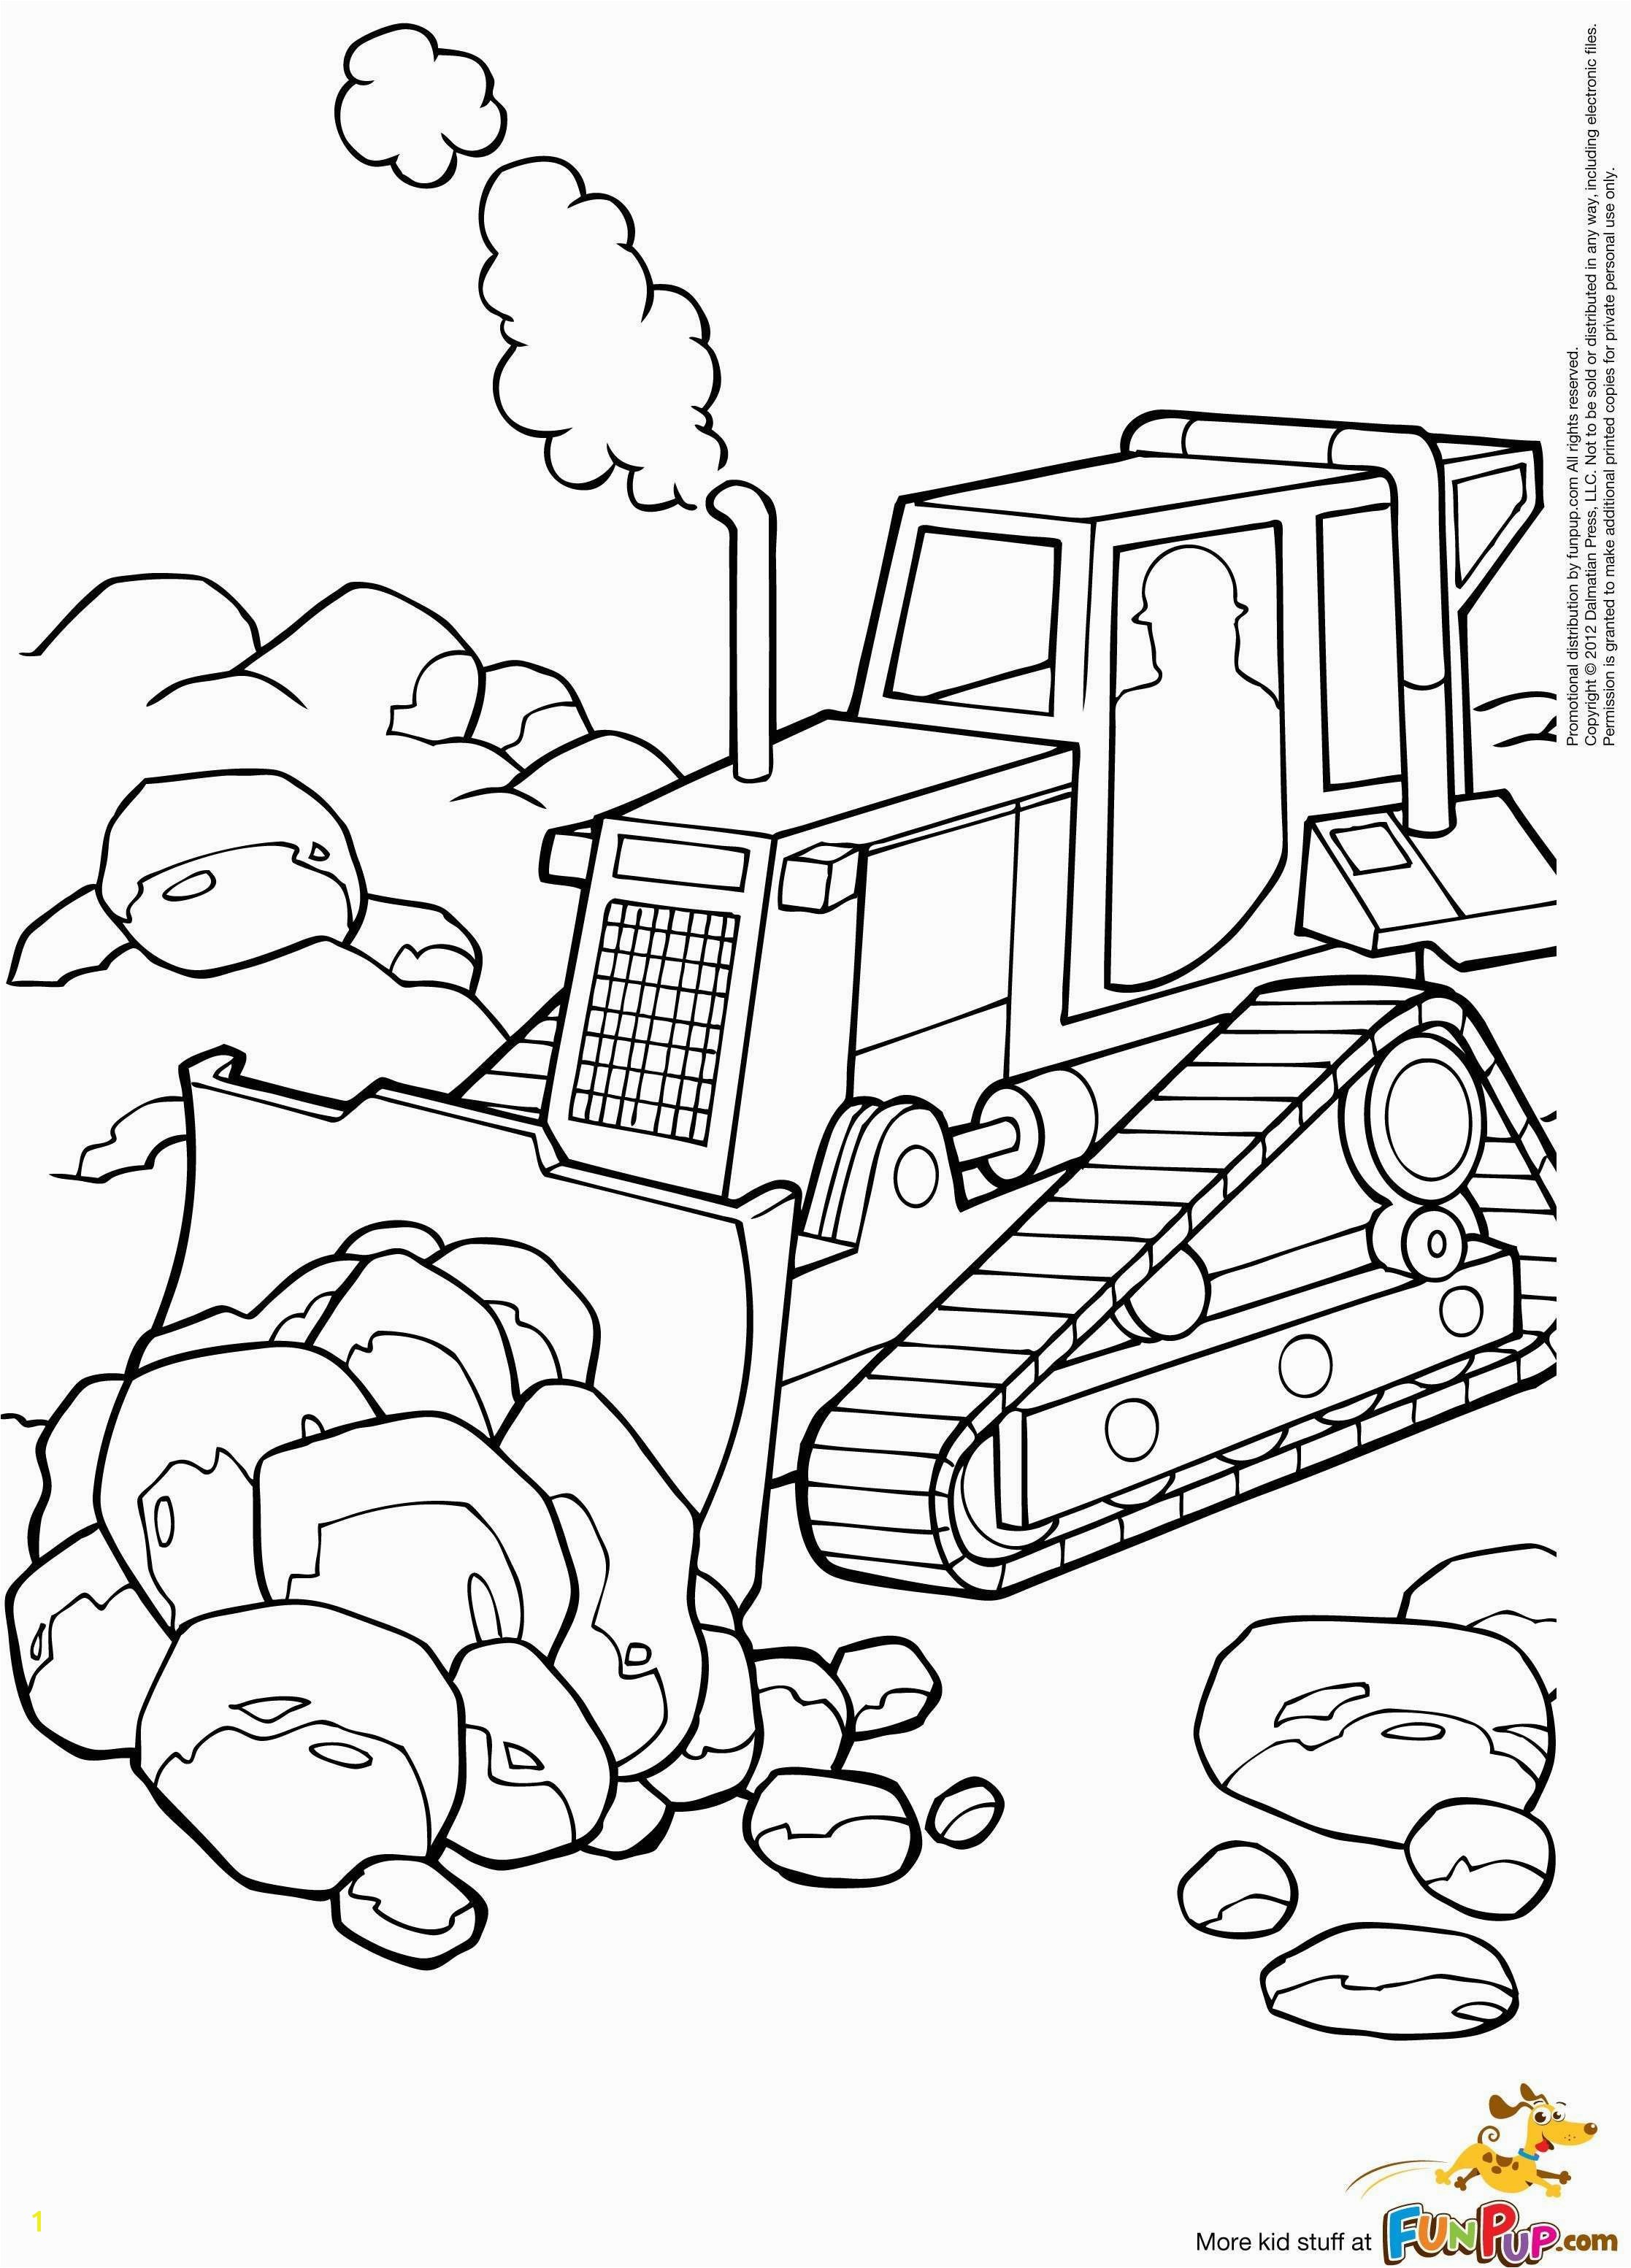 Coloring Pages for Boys Lego Printable Construction Coloring Pages Tipper Truck Full Od Sand Coloring Page